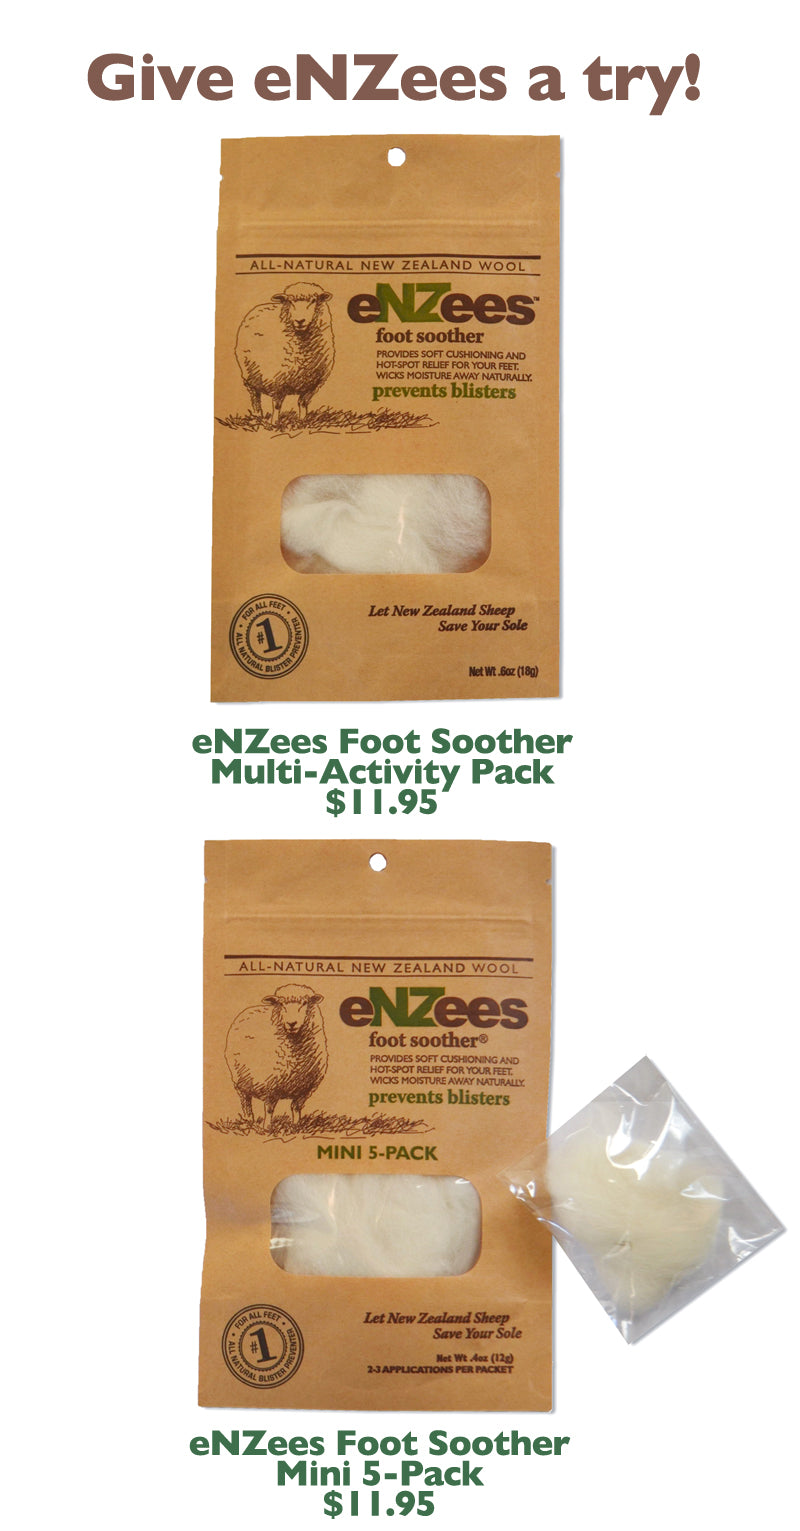 Use eNZees Foot Soother to prevent blisters while hiking, running, walking